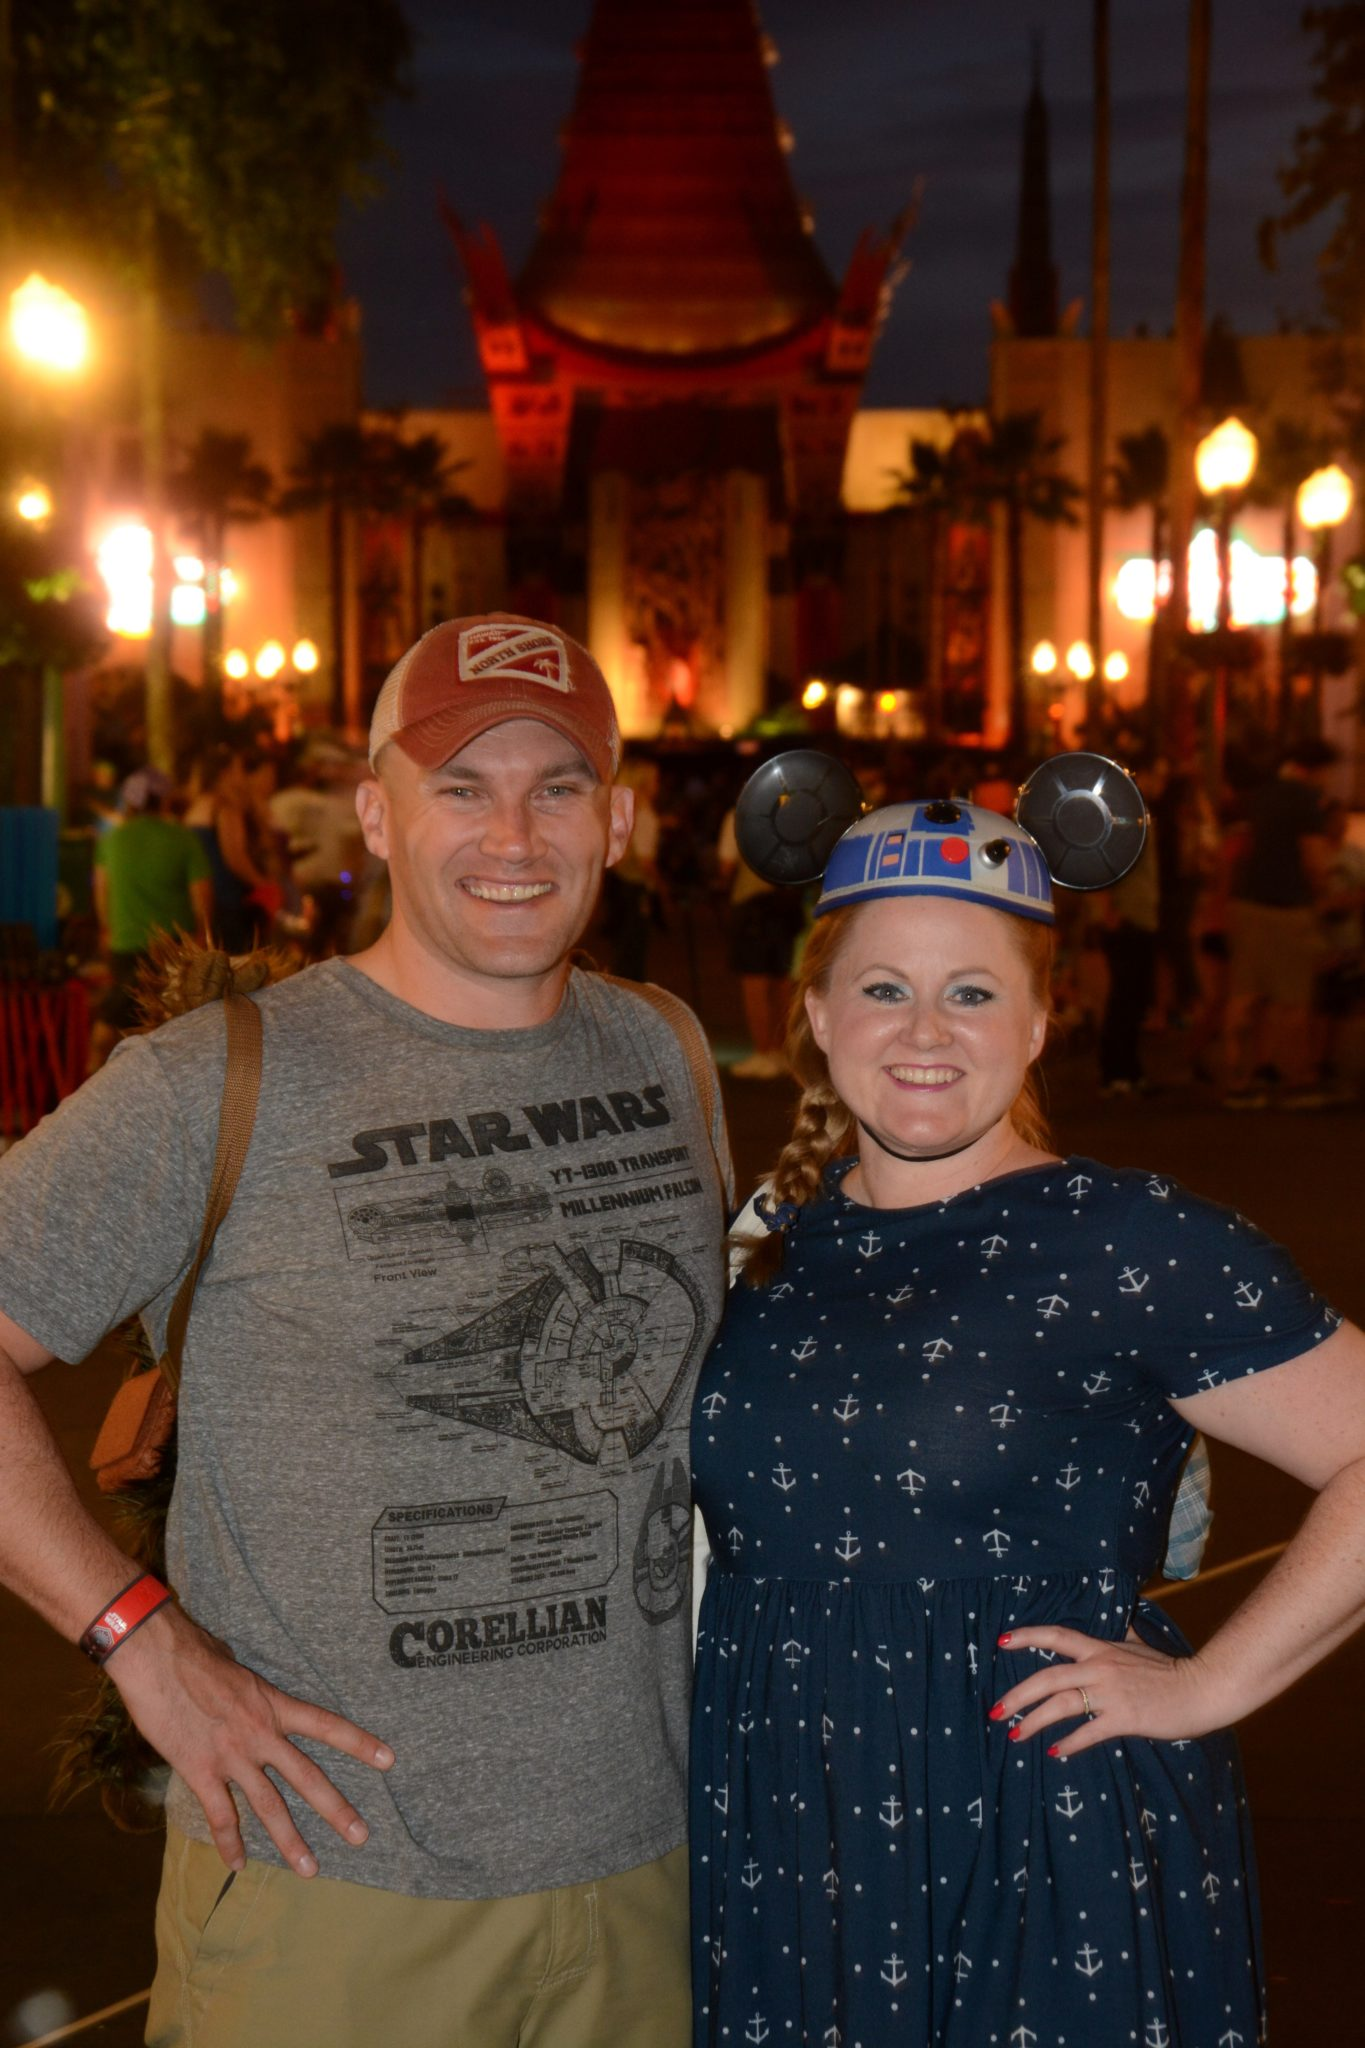 Visiting Disney World for Fourth of July